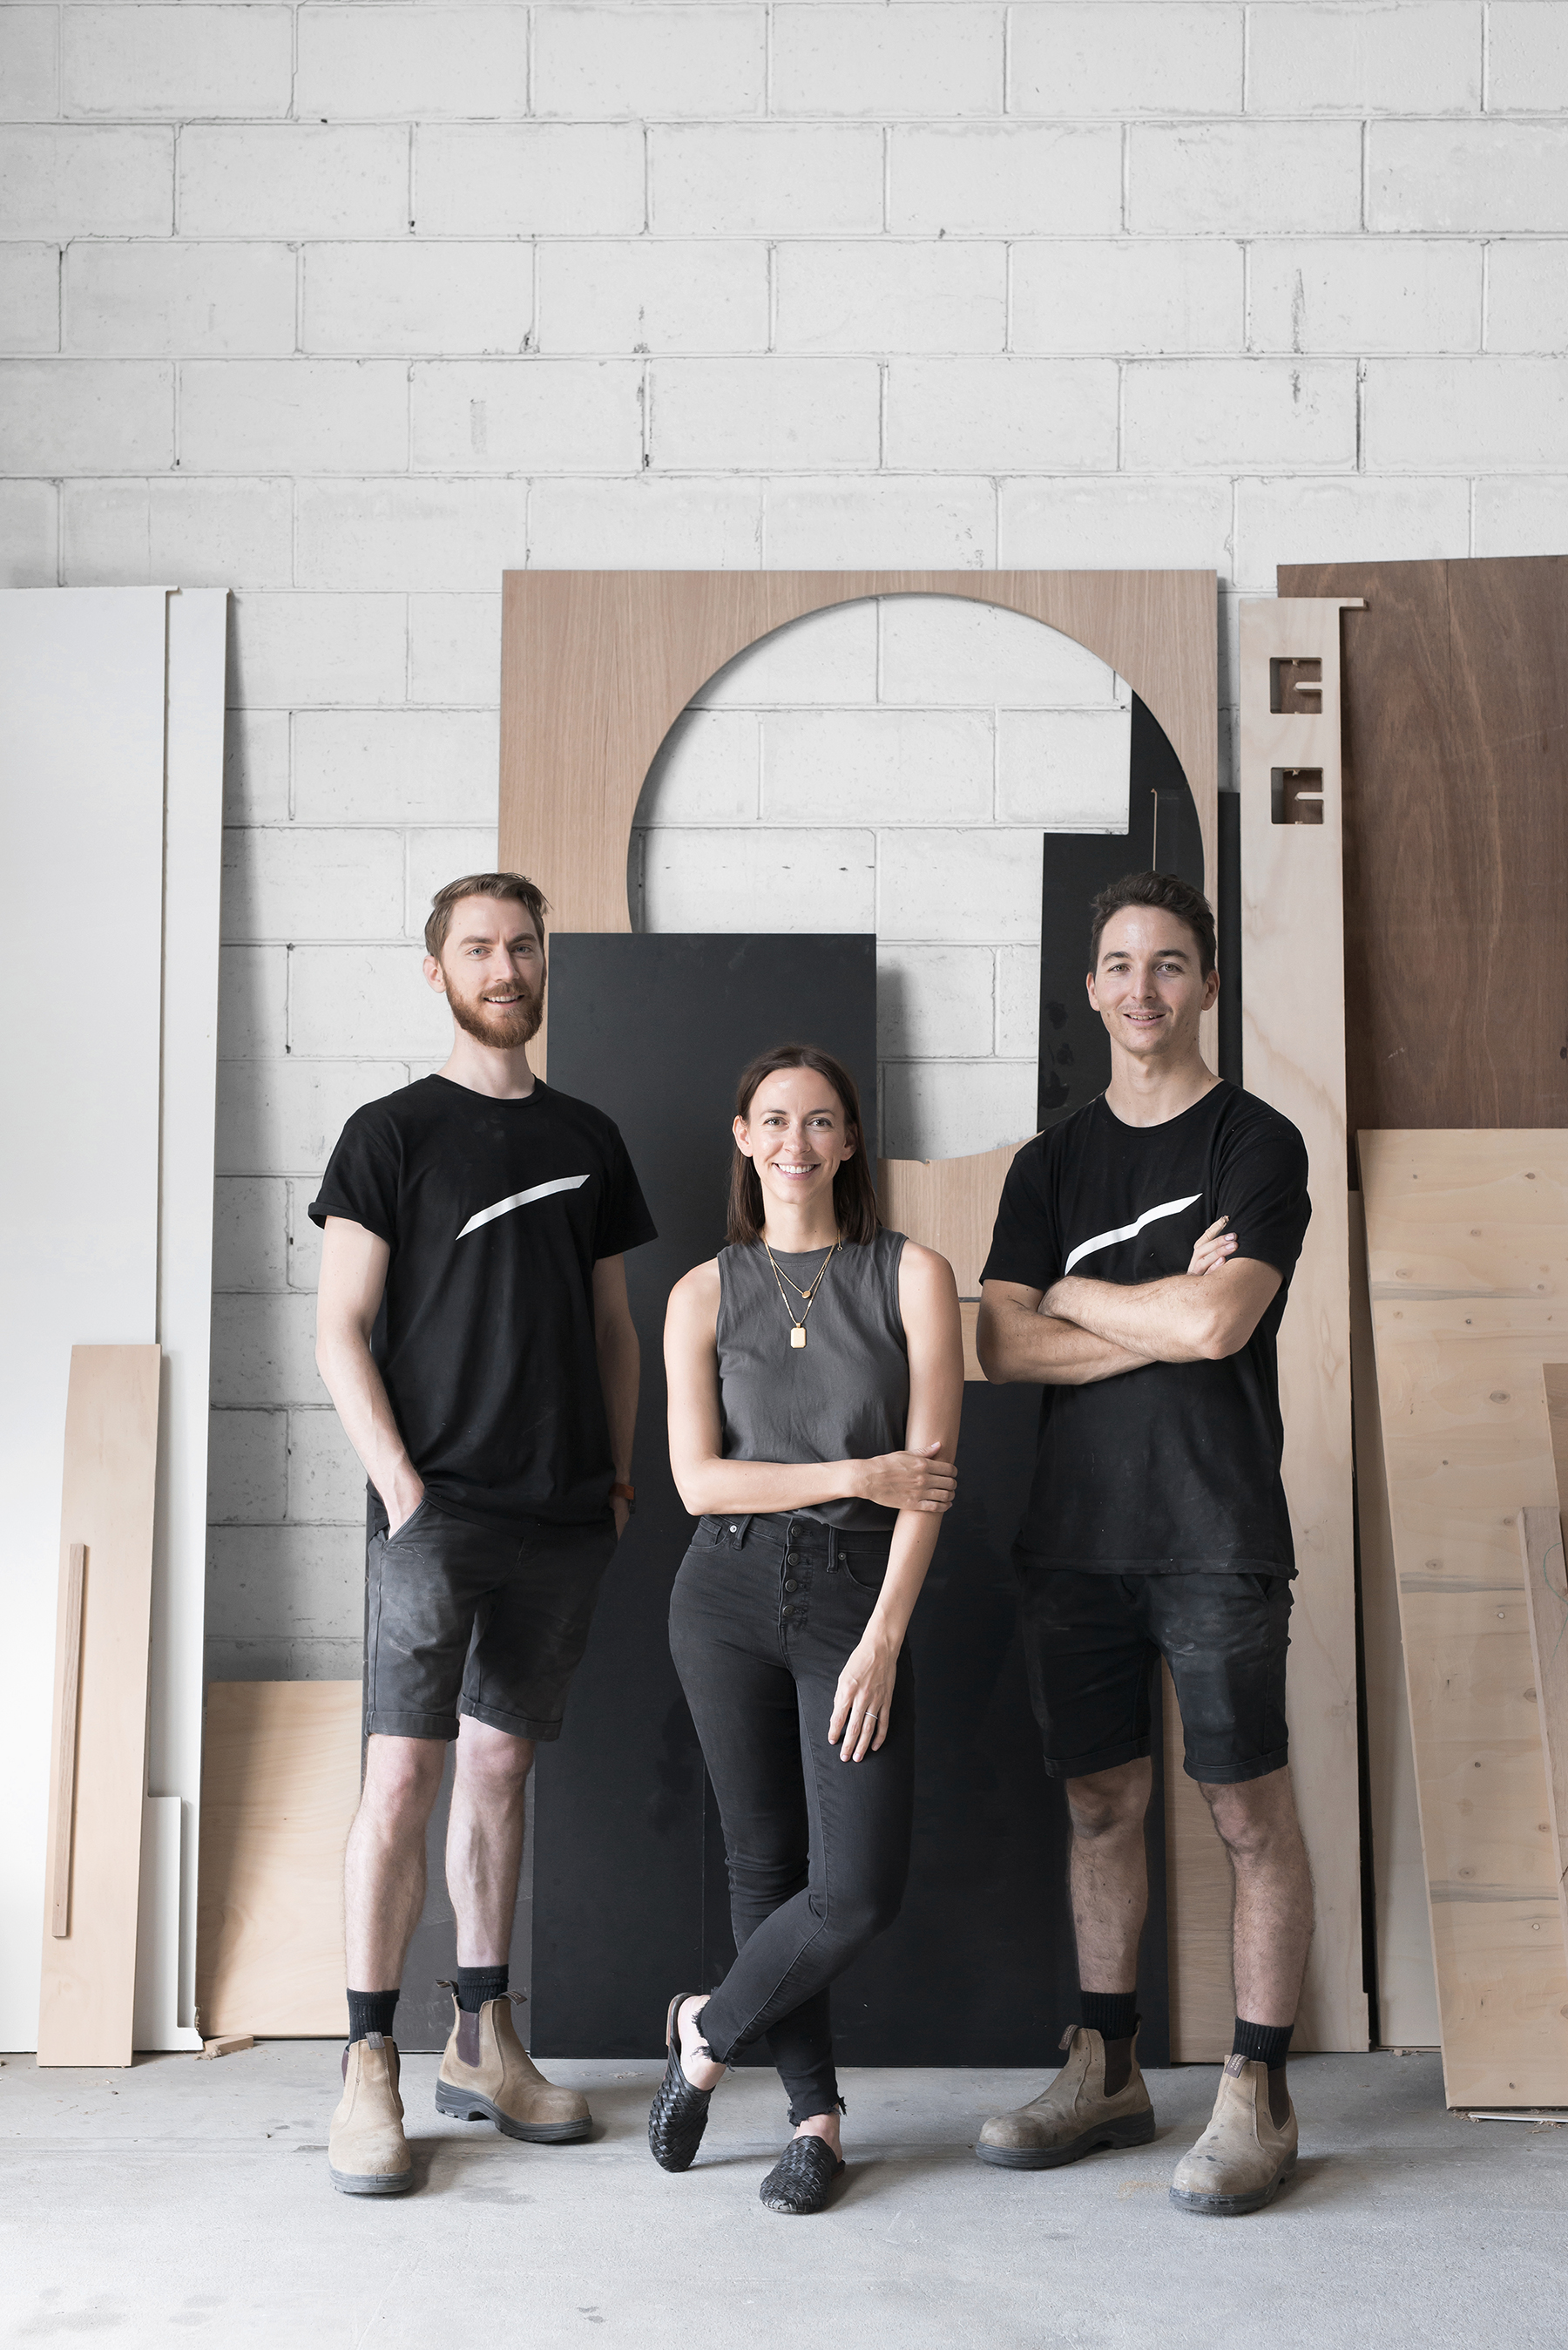 LEFT to RIGHT: Christian Hakansson, Kati Morgan and Rory Morgan in the Mast workshop in north Brisbane.